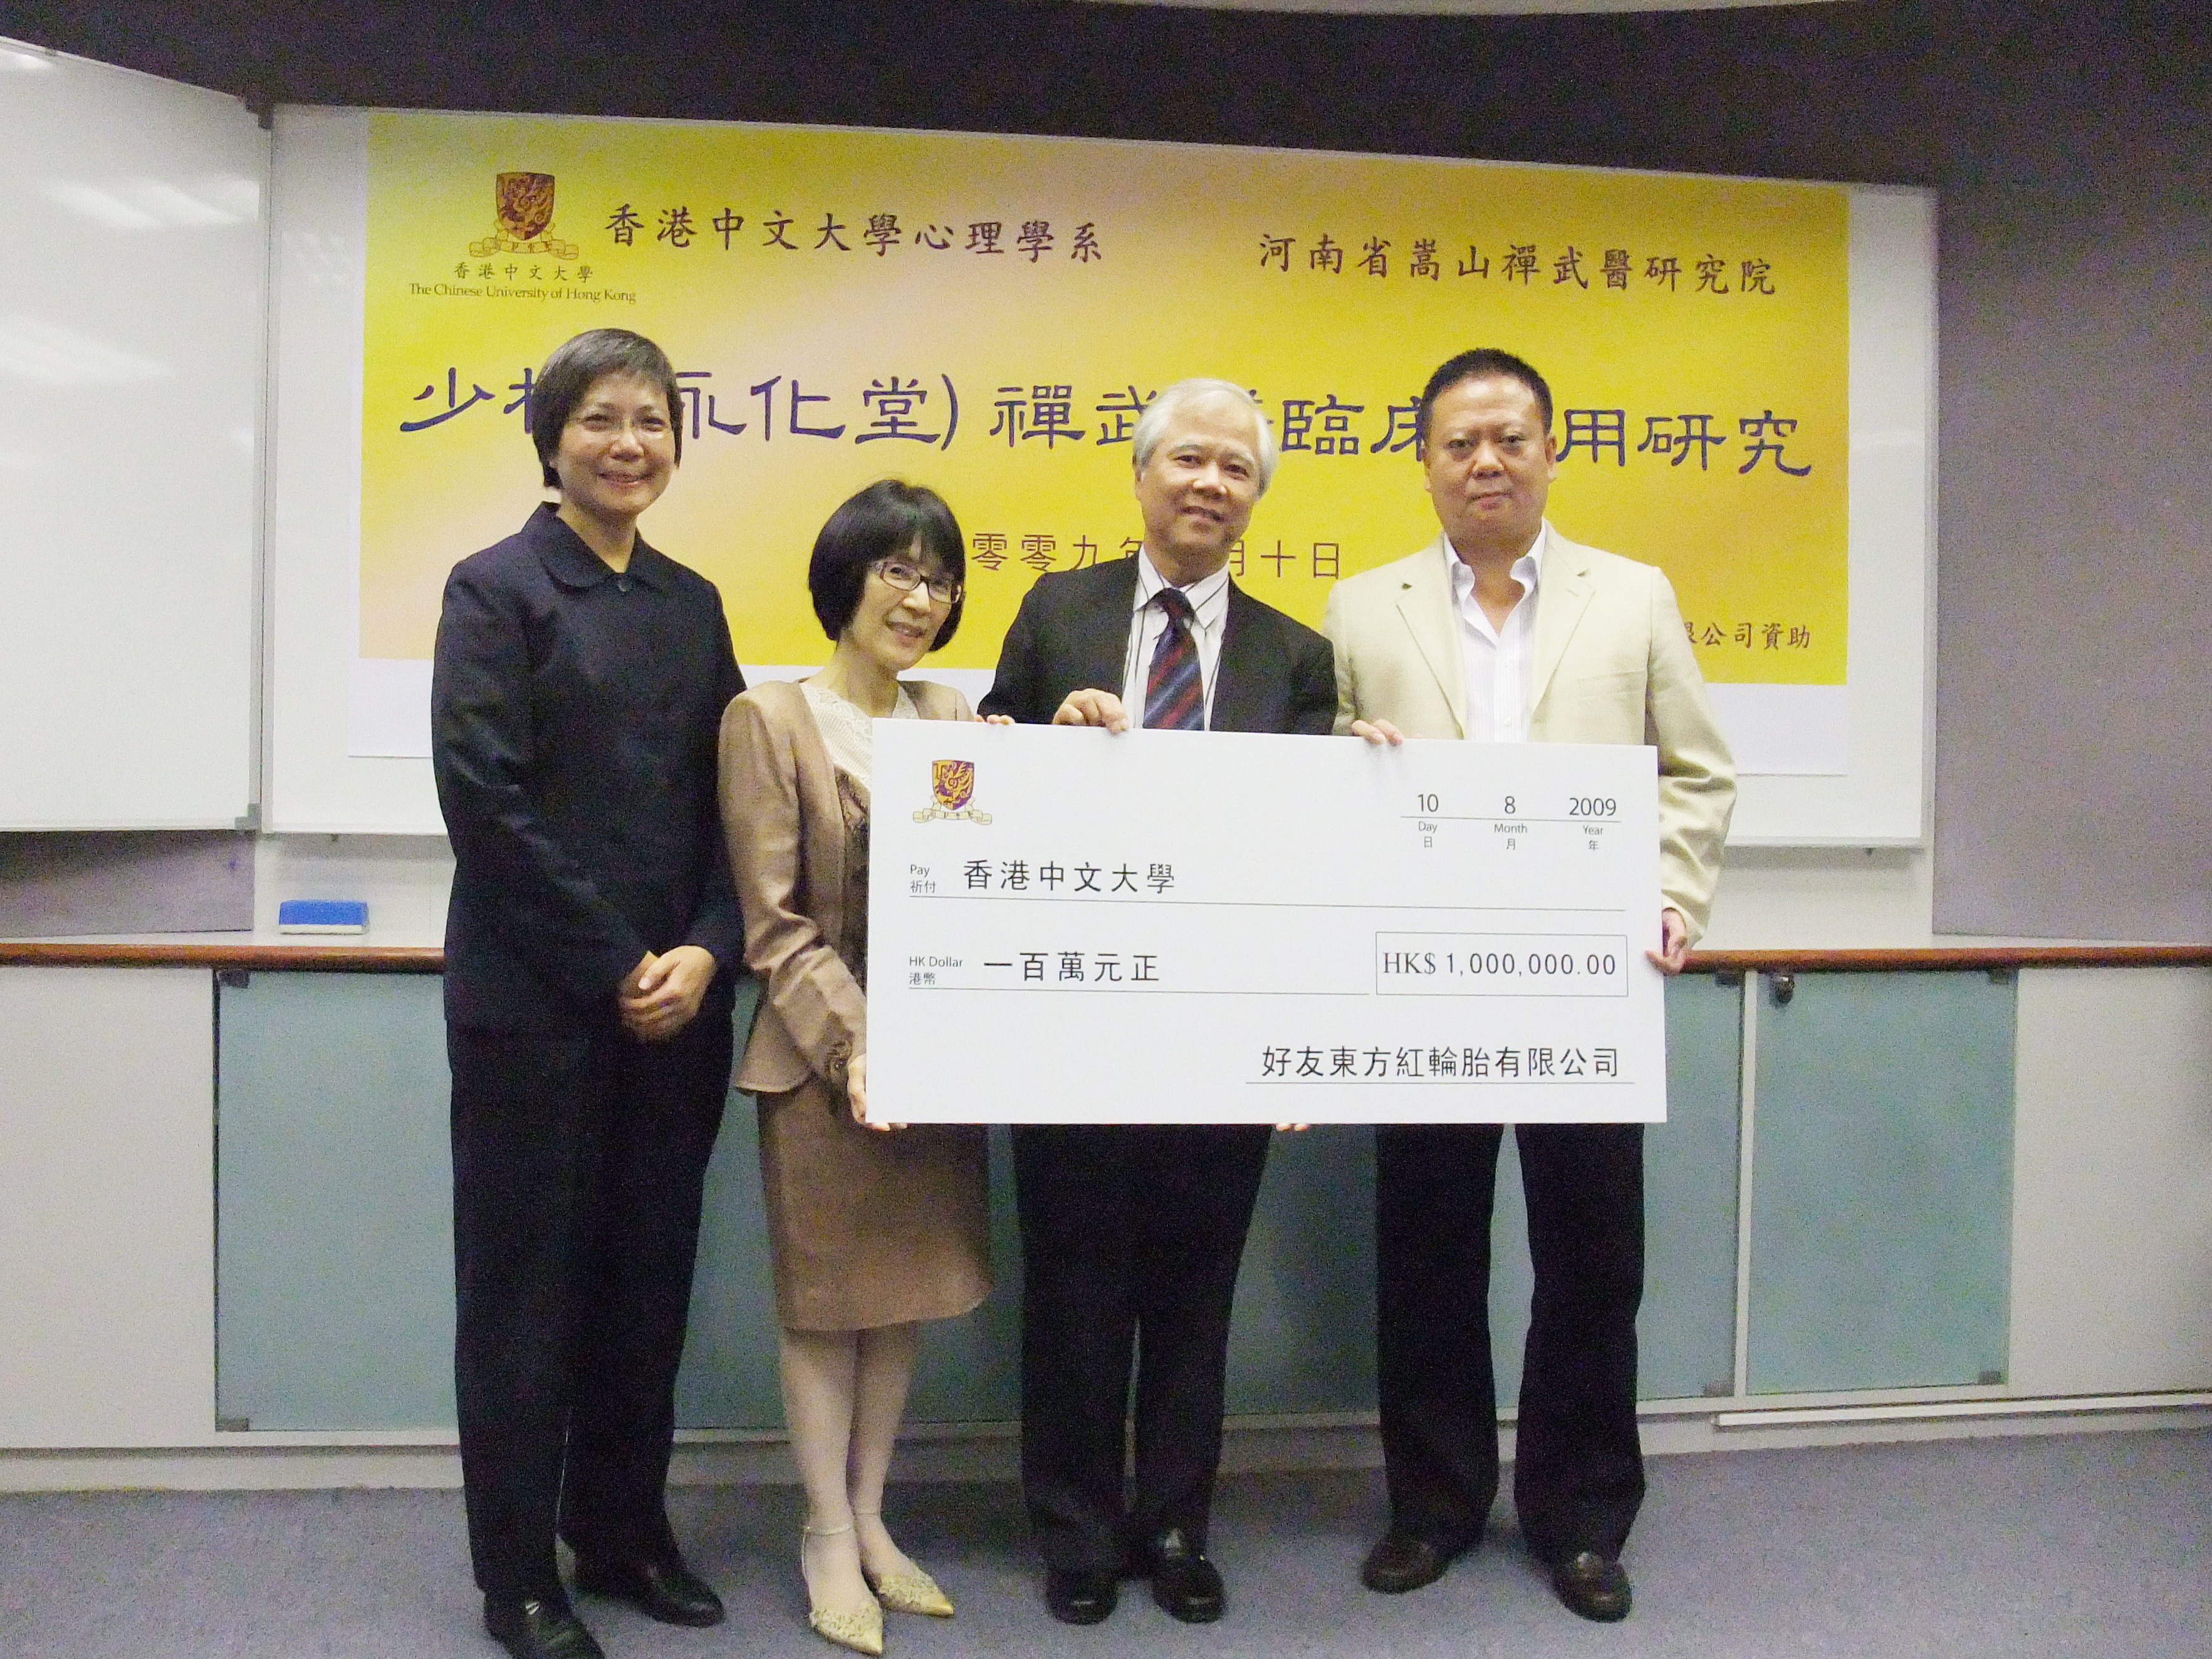 The Department of Psychology of CUHK receives a donation of HK$1 million for developing research and education programmes on Shaolin Chanwuyi.